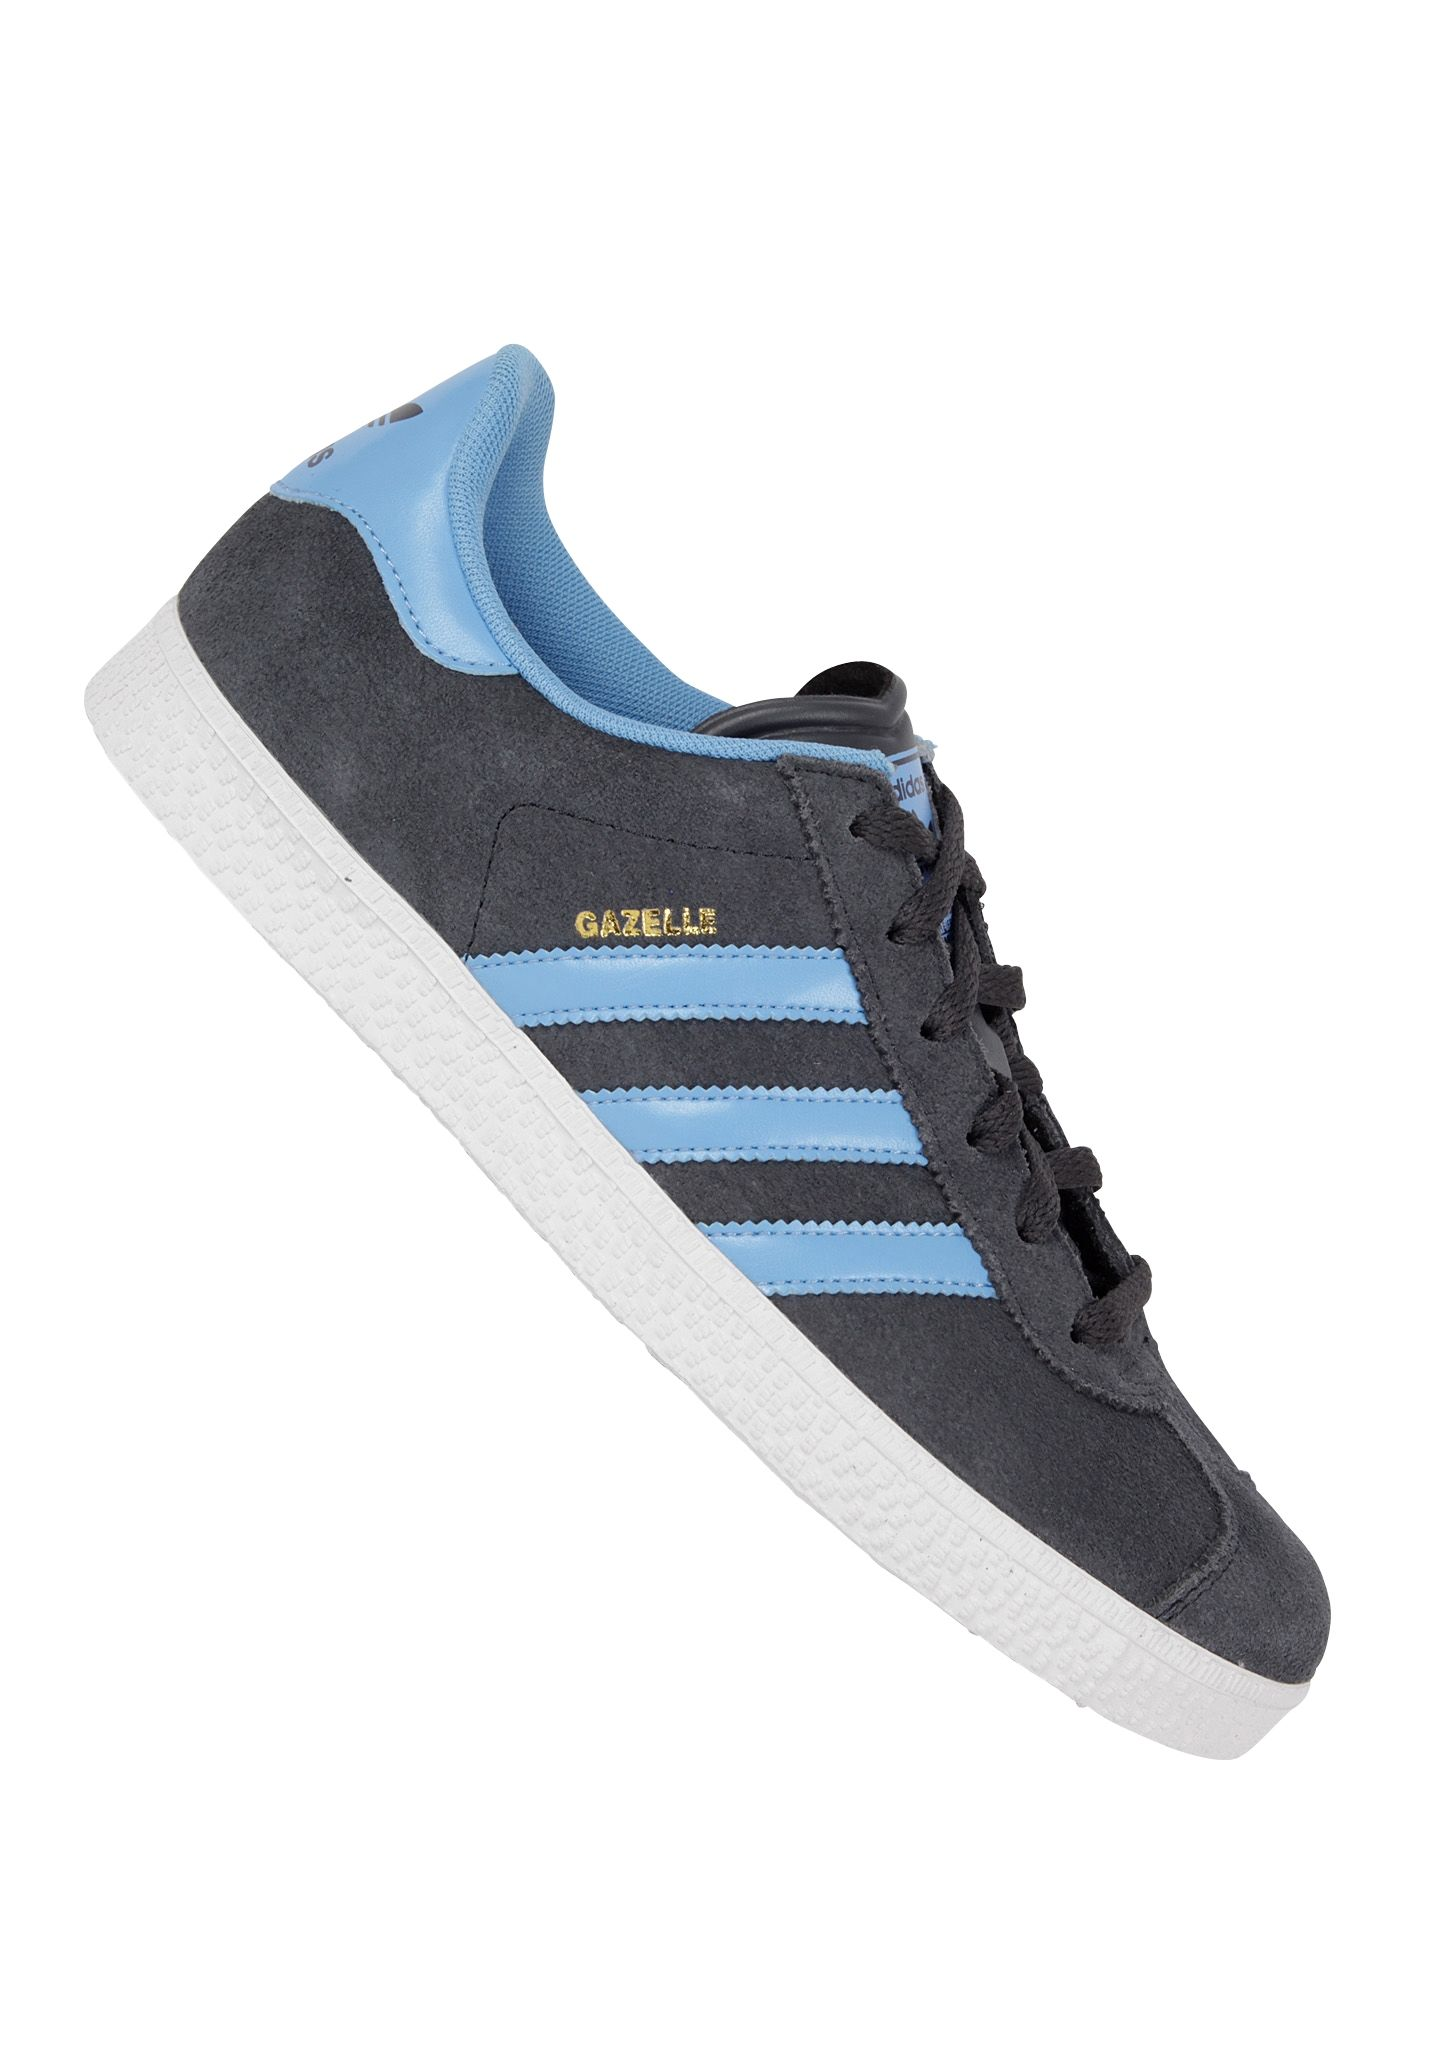 on sale b69b2 df787 ADIDAS Gazelle 2 J - Sneakers - Blue - Planet Sports